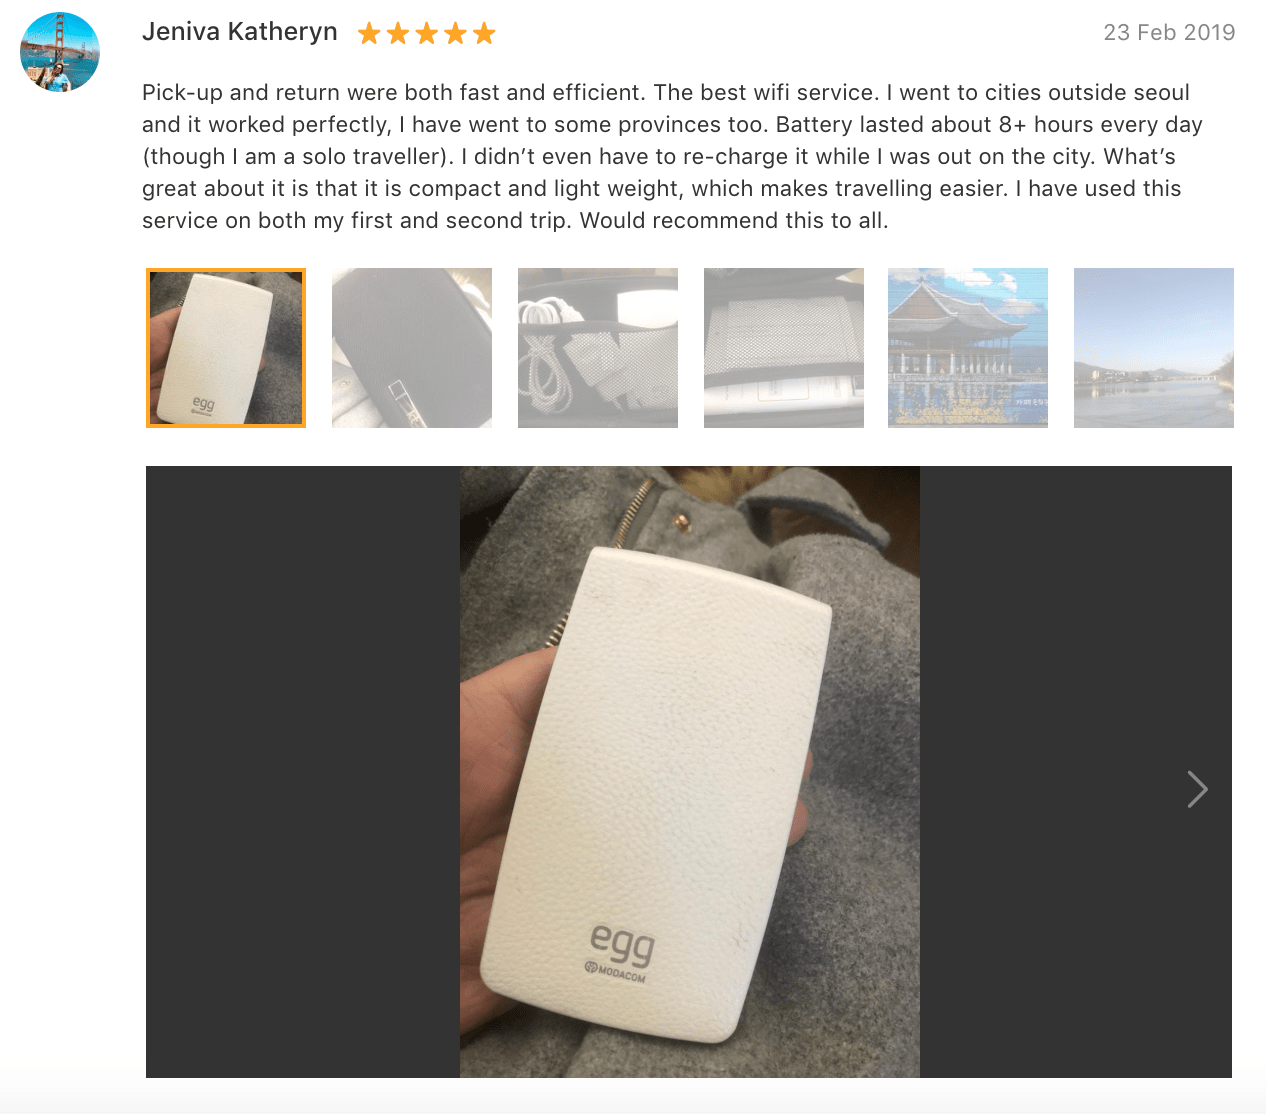 'Pick-up and return were both fast and efficient. The best wifi service. I went to cities outside seoul and it worked perfectly…Battery lasted about 8+ hours every day…' -